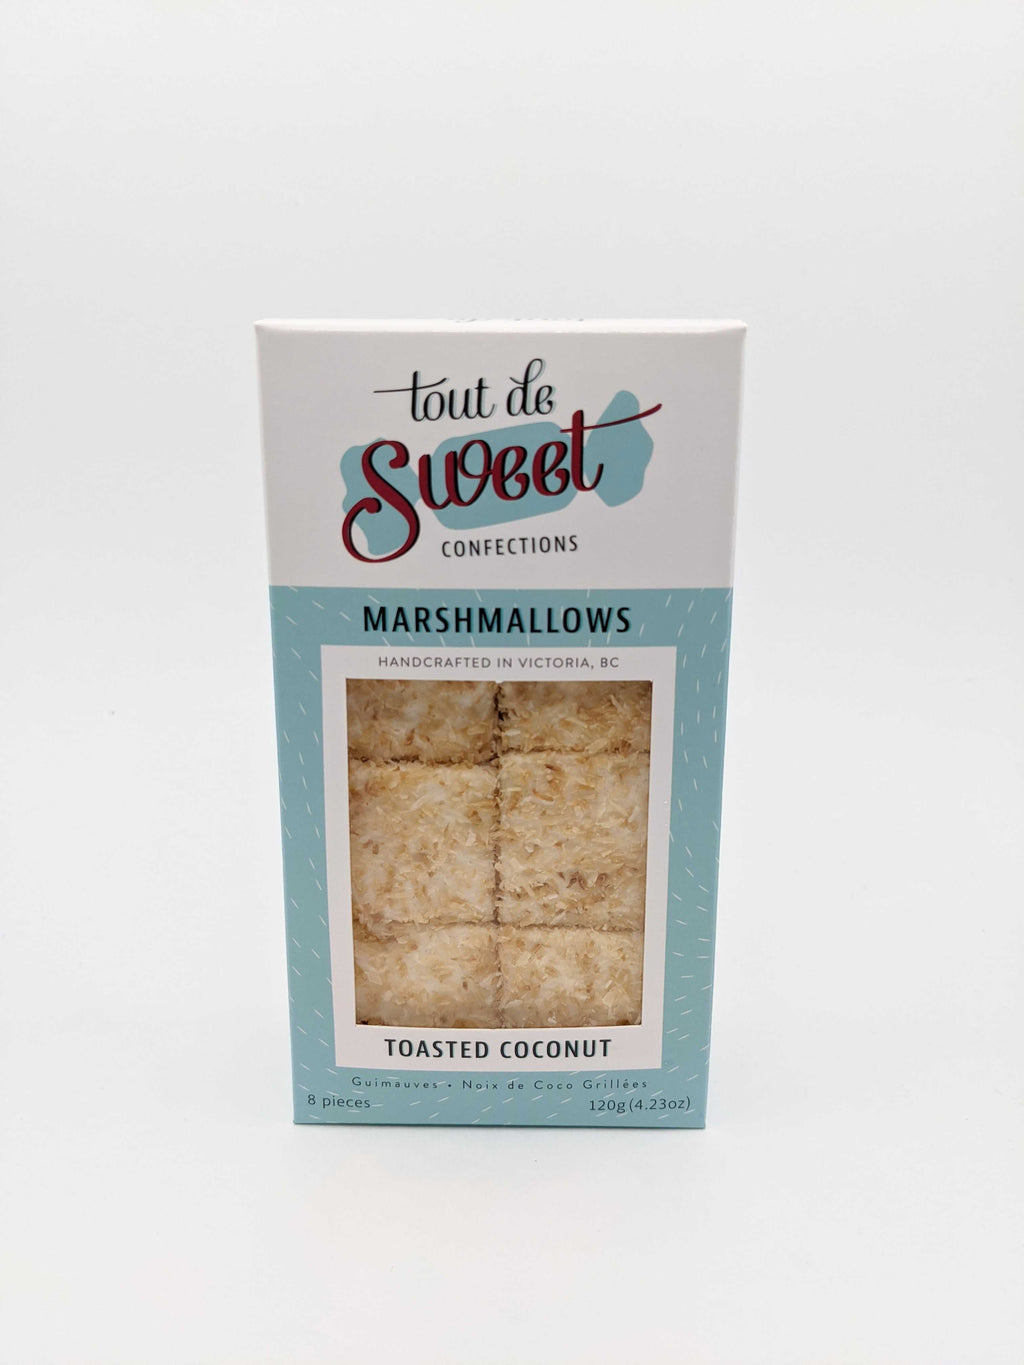 Box of Tout de Sweet Confections Toasted Coconut Marshmallows